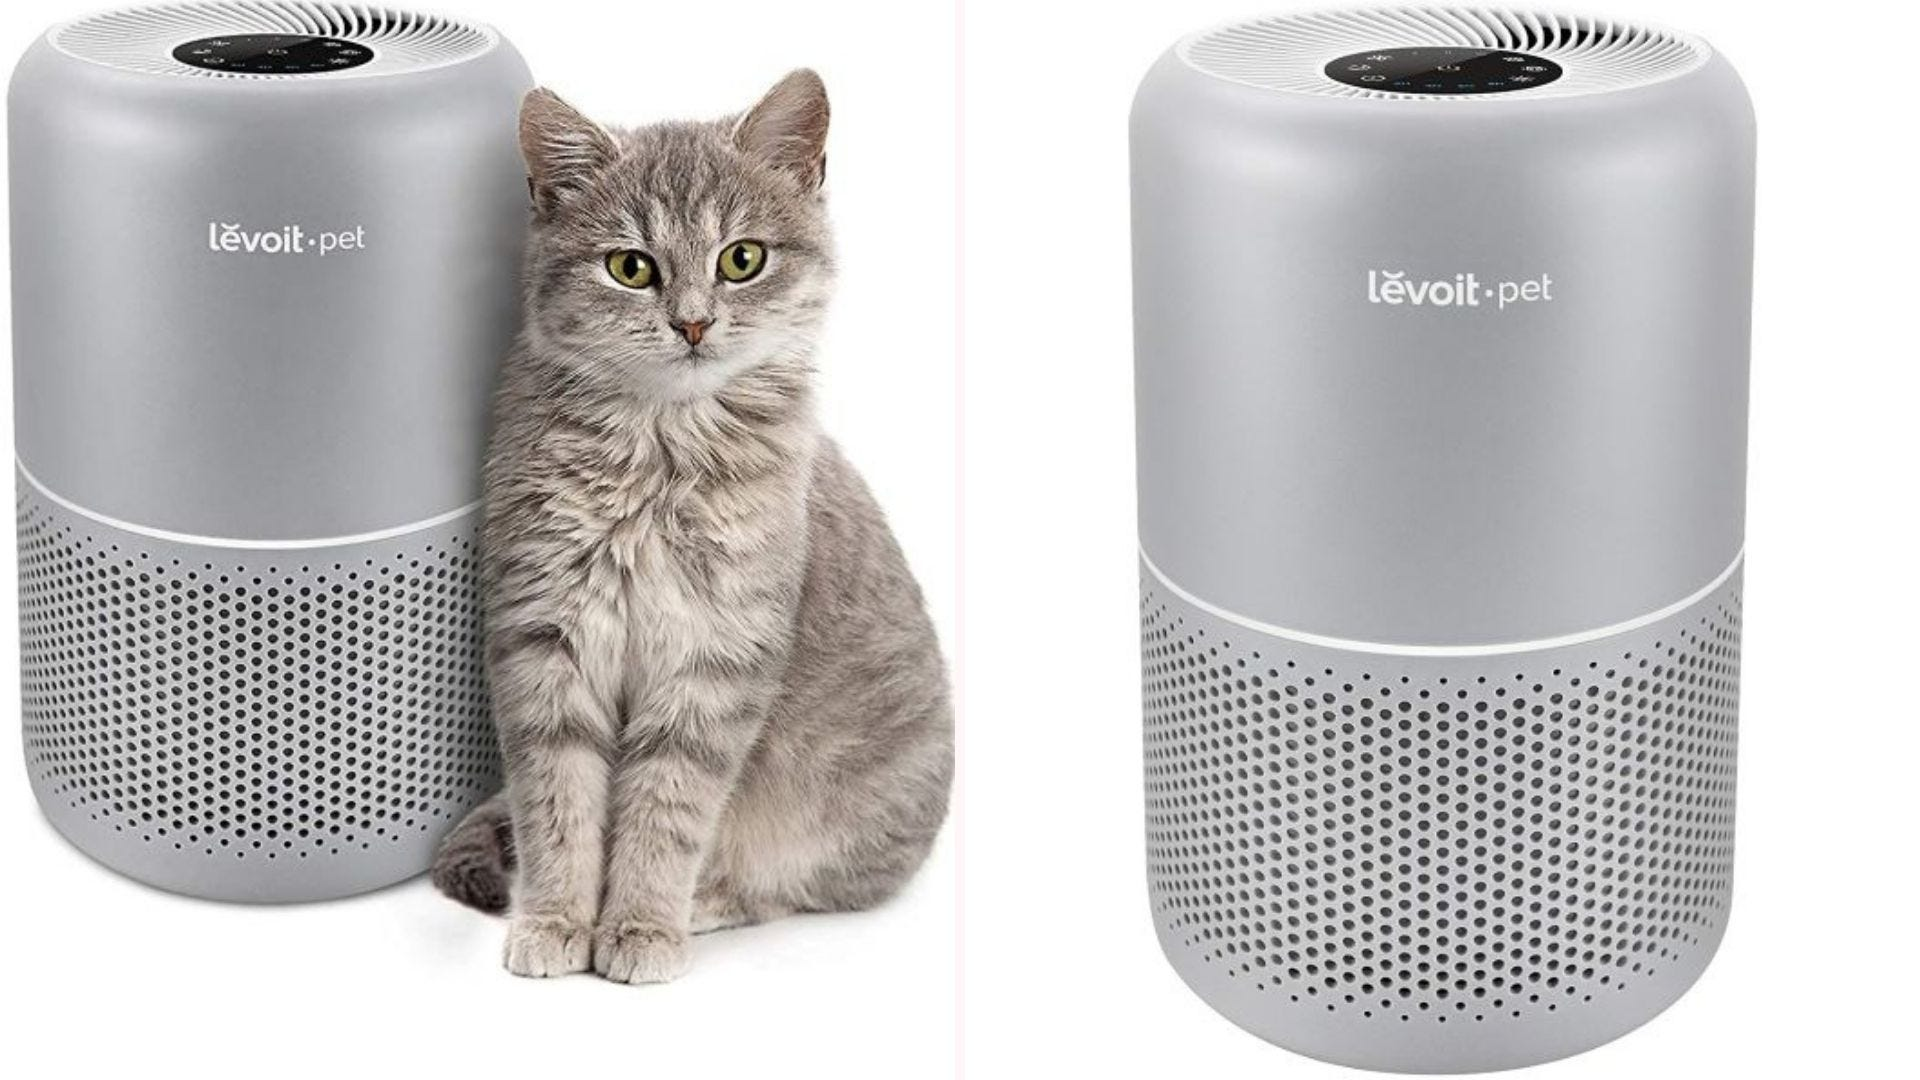 A gray tabby cat sitting next to the LEVOIT Pet Air Purifier.